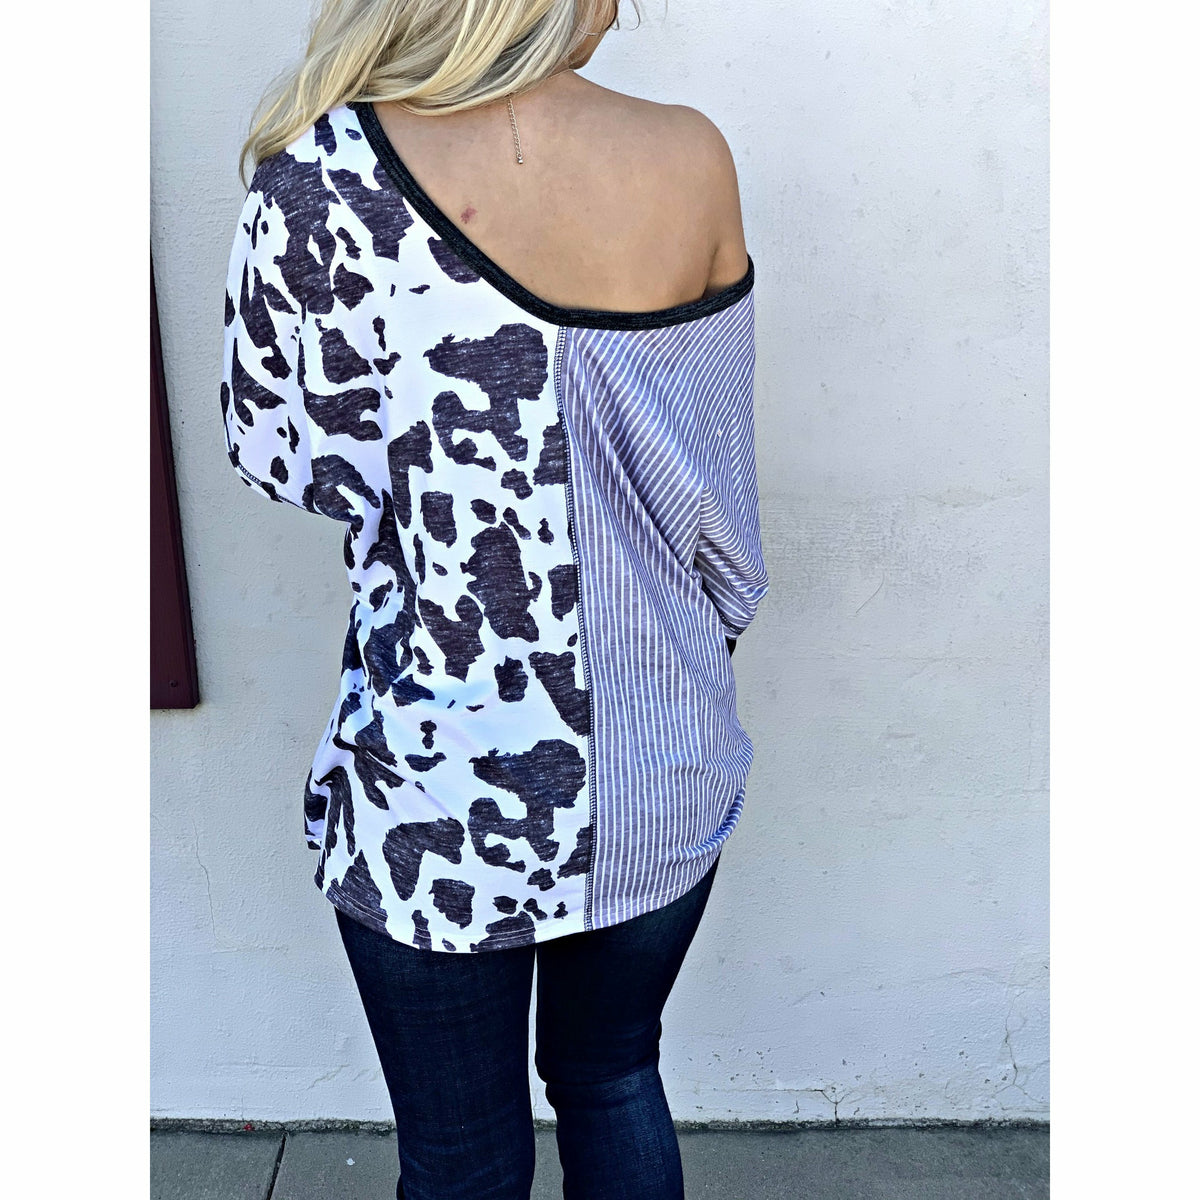 Cow print boat V neck Top (Regular & Plus)